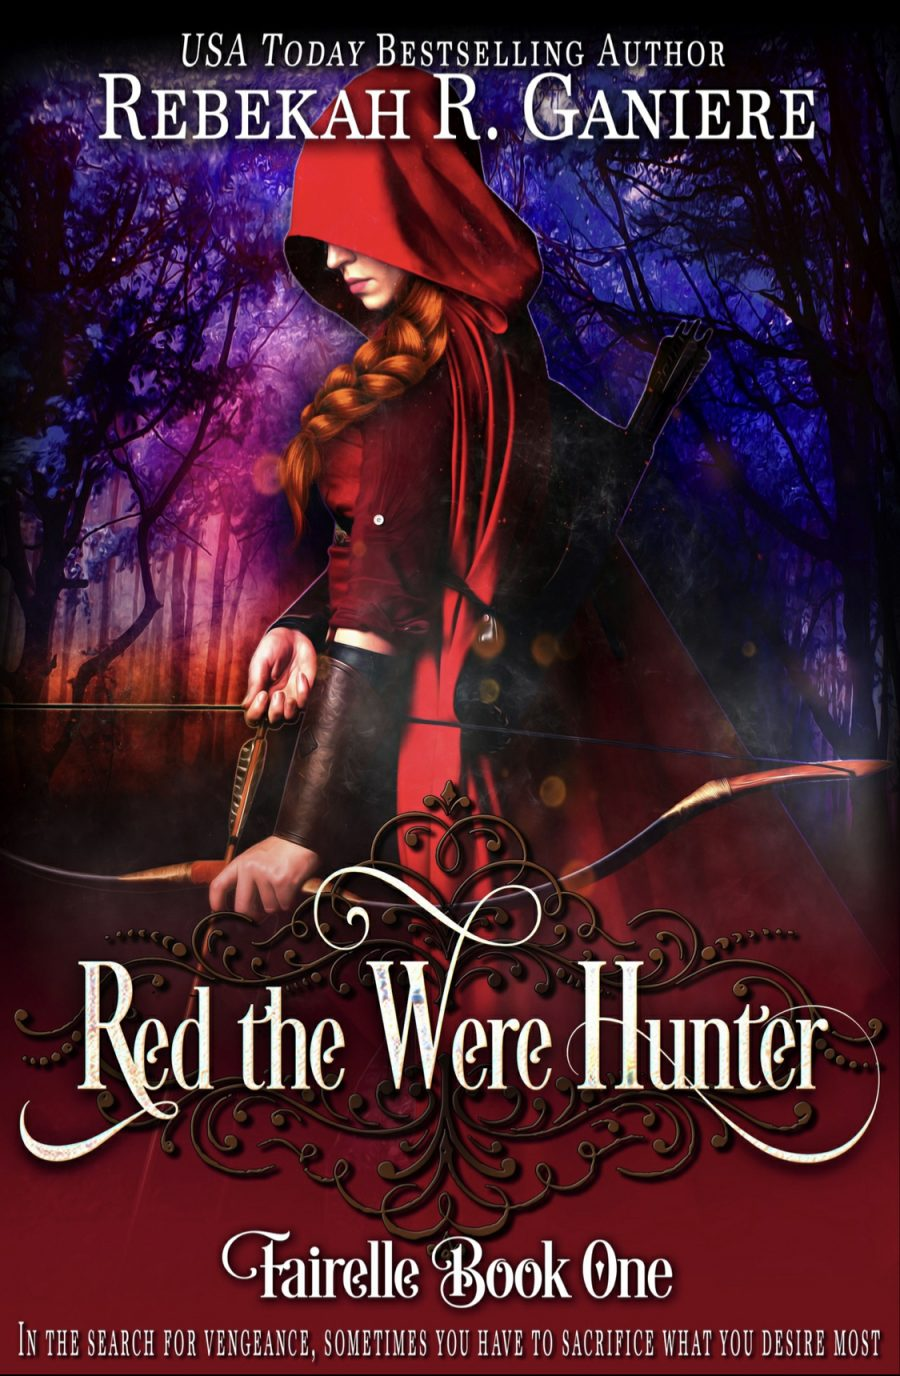 Red the Were Hunter (Fairelle - Book 1) by Rebekah R. Ganiere - A Book Review #BookReview #Fantasy #Fairytale #RedRidingHood #Shifters #HEA #OldRelease #KU #KindleUnlimited